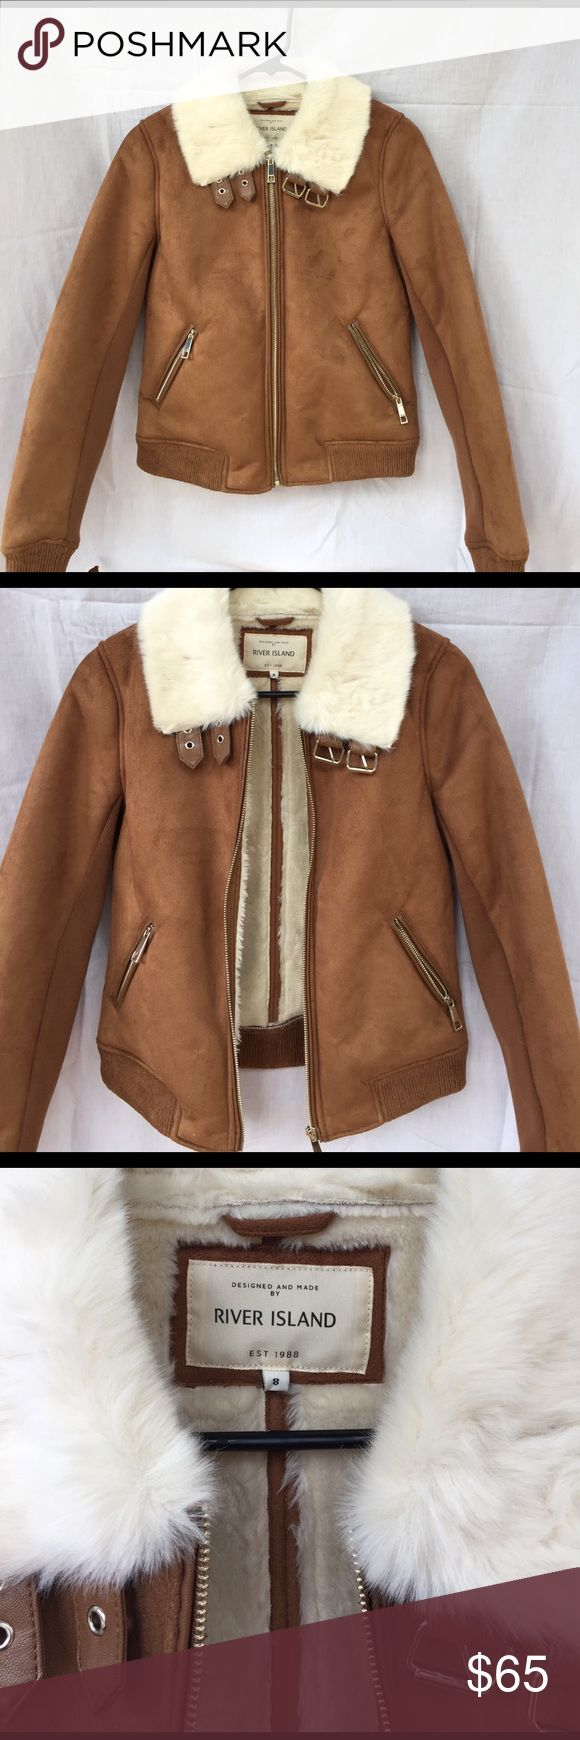 River Island Suede Jacket SO BUMMED, too small. Size EU8, fits like a 2/XS. If anyone has this in 10/ Sm/M, willing to trade. Bought in Italy. Never worn. River Island Jackets & Coats